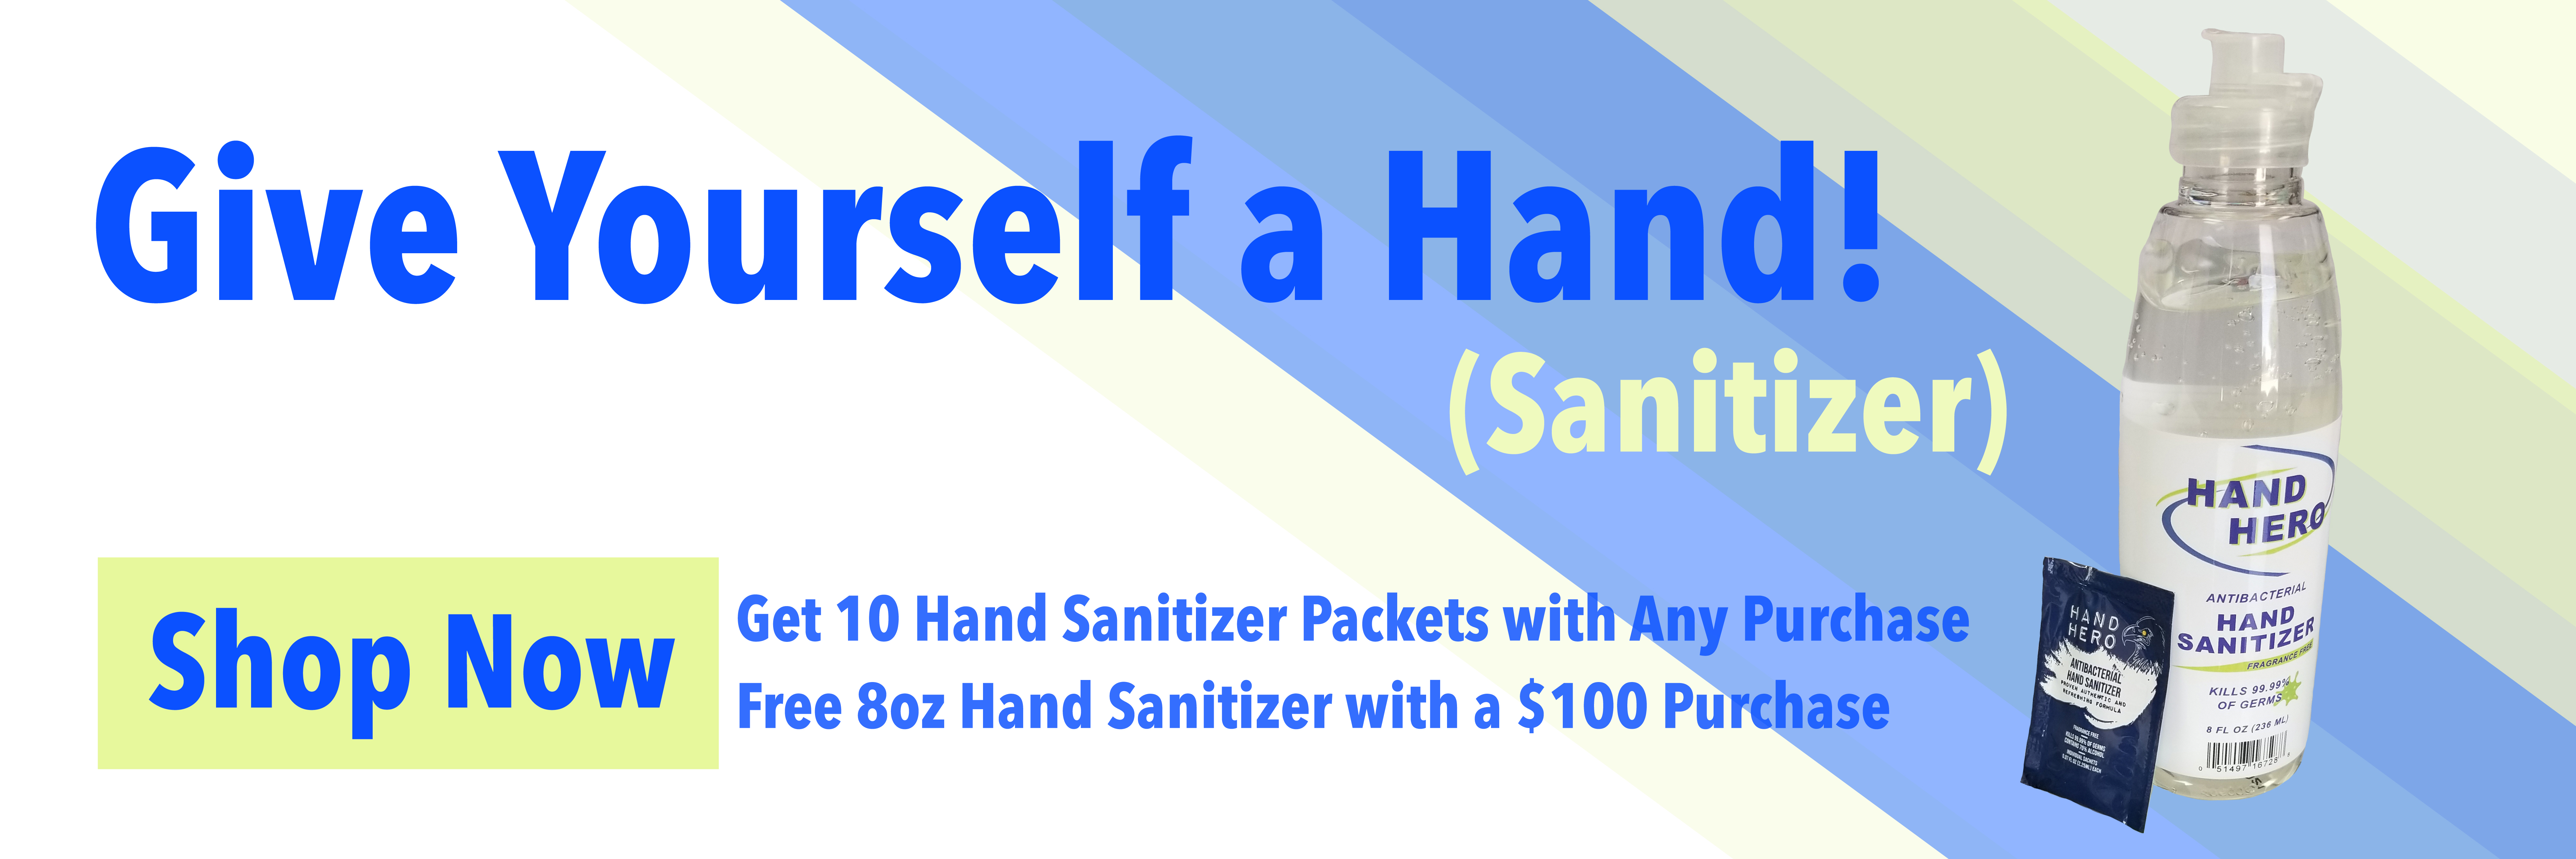 Free hand sanitizer with any purchase